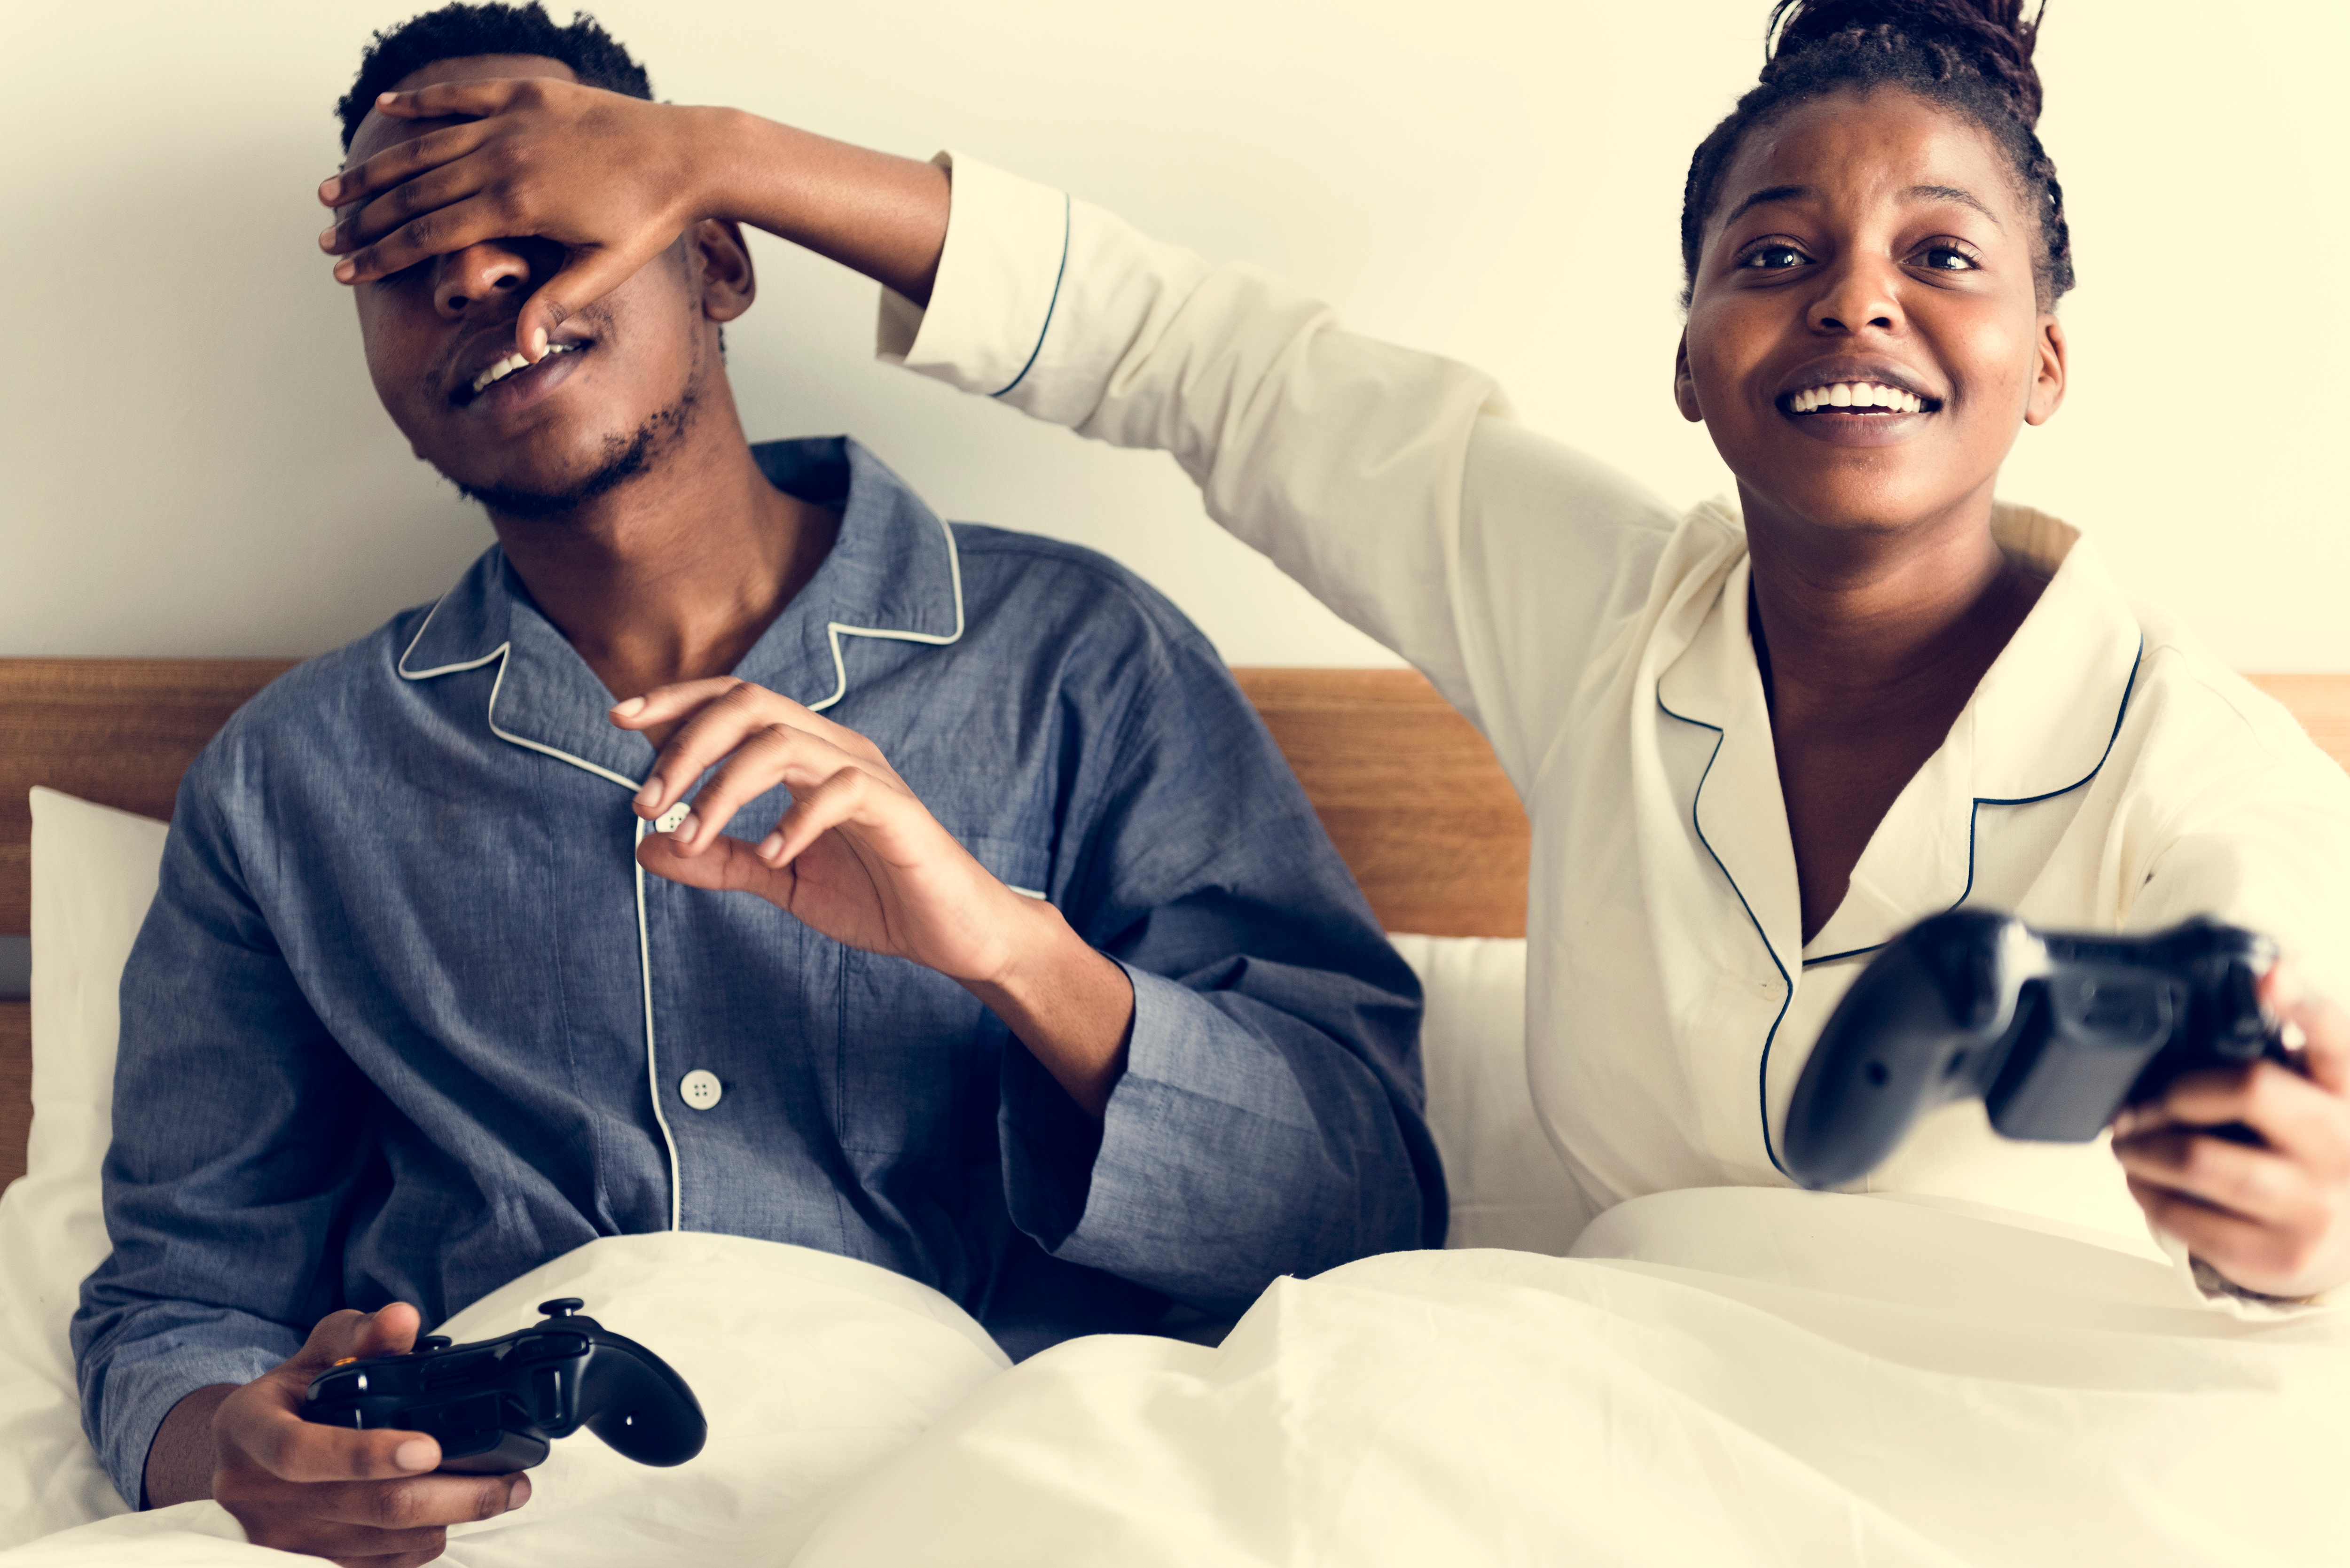 Couple playing video games